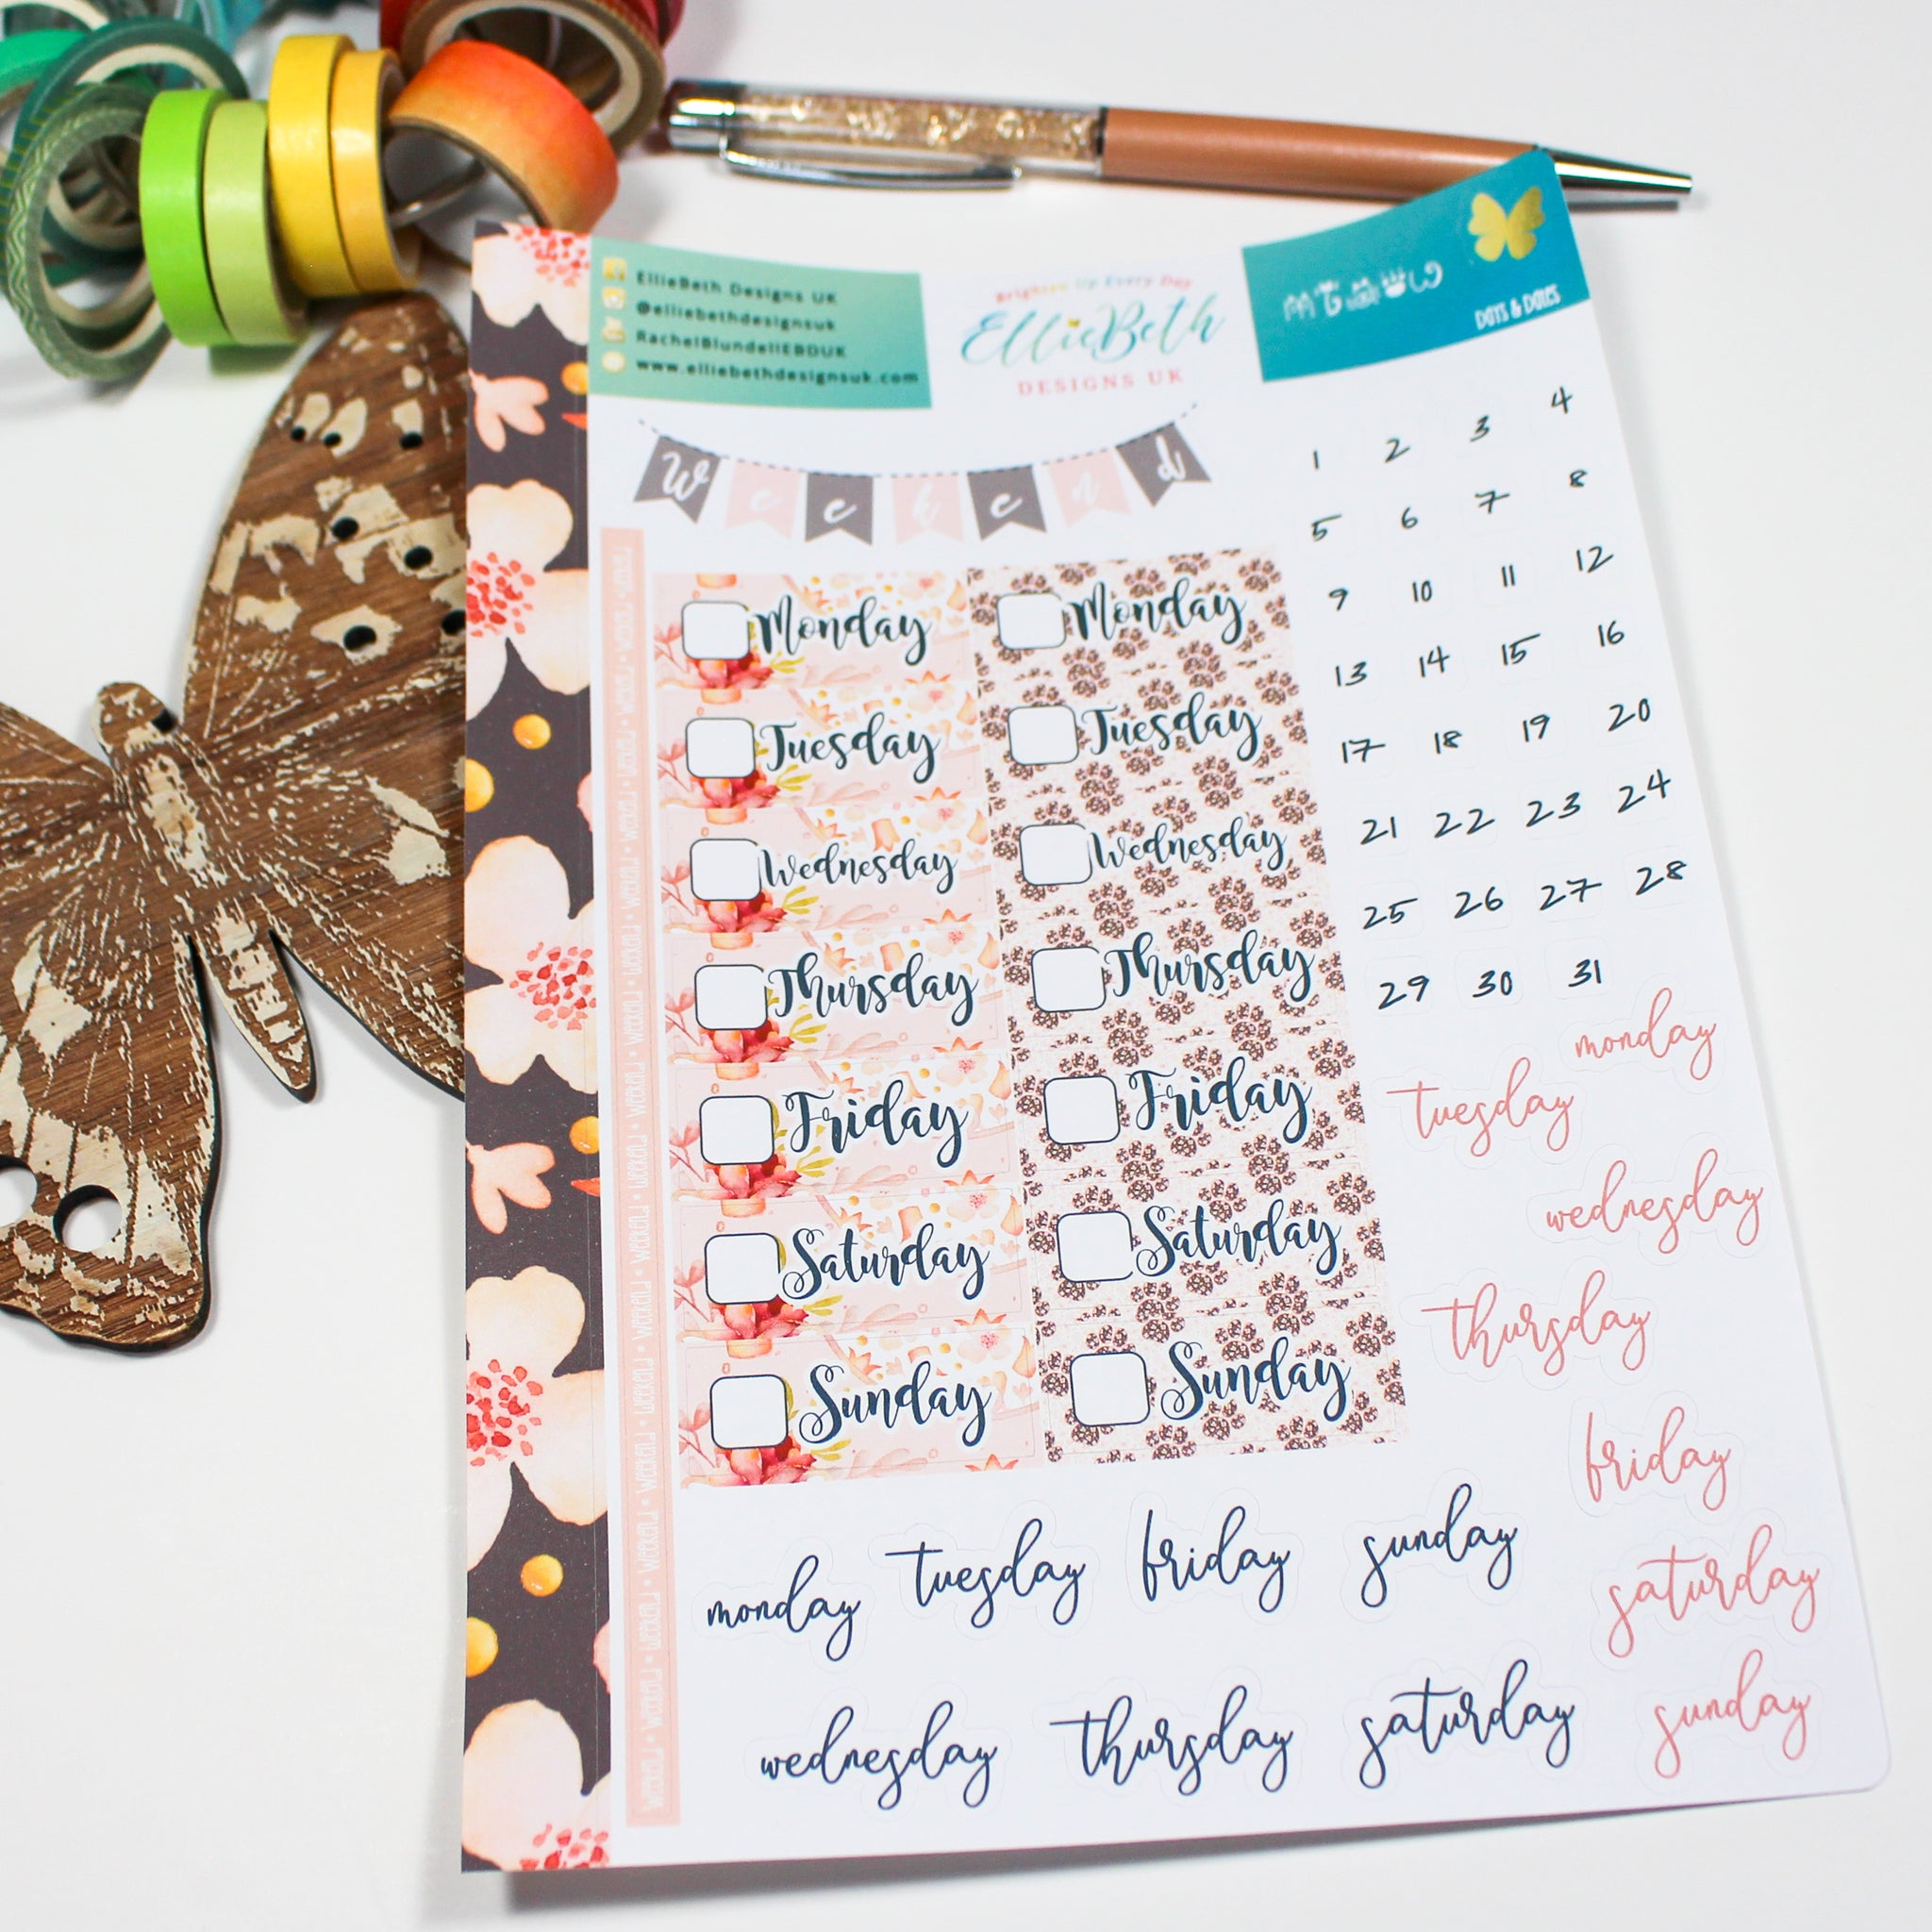 'Miaow' - Days and Dates - A5 binder ready planner stickers